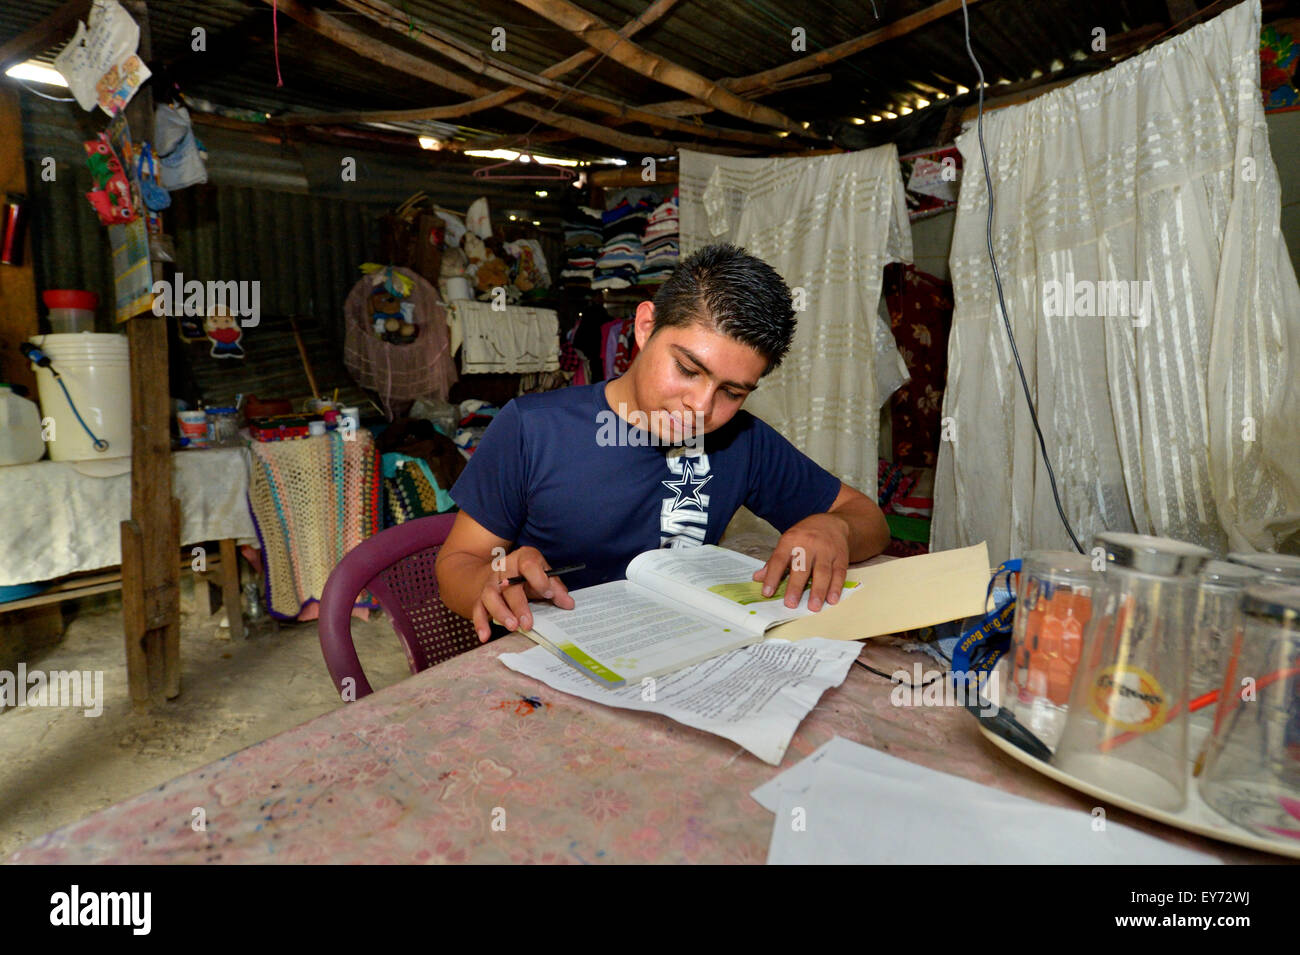 Teenager, 17 years, doing homework in his hut, slum Colonia Monsenor Romero, Distrito Itália, San Salvador, - Stock Image